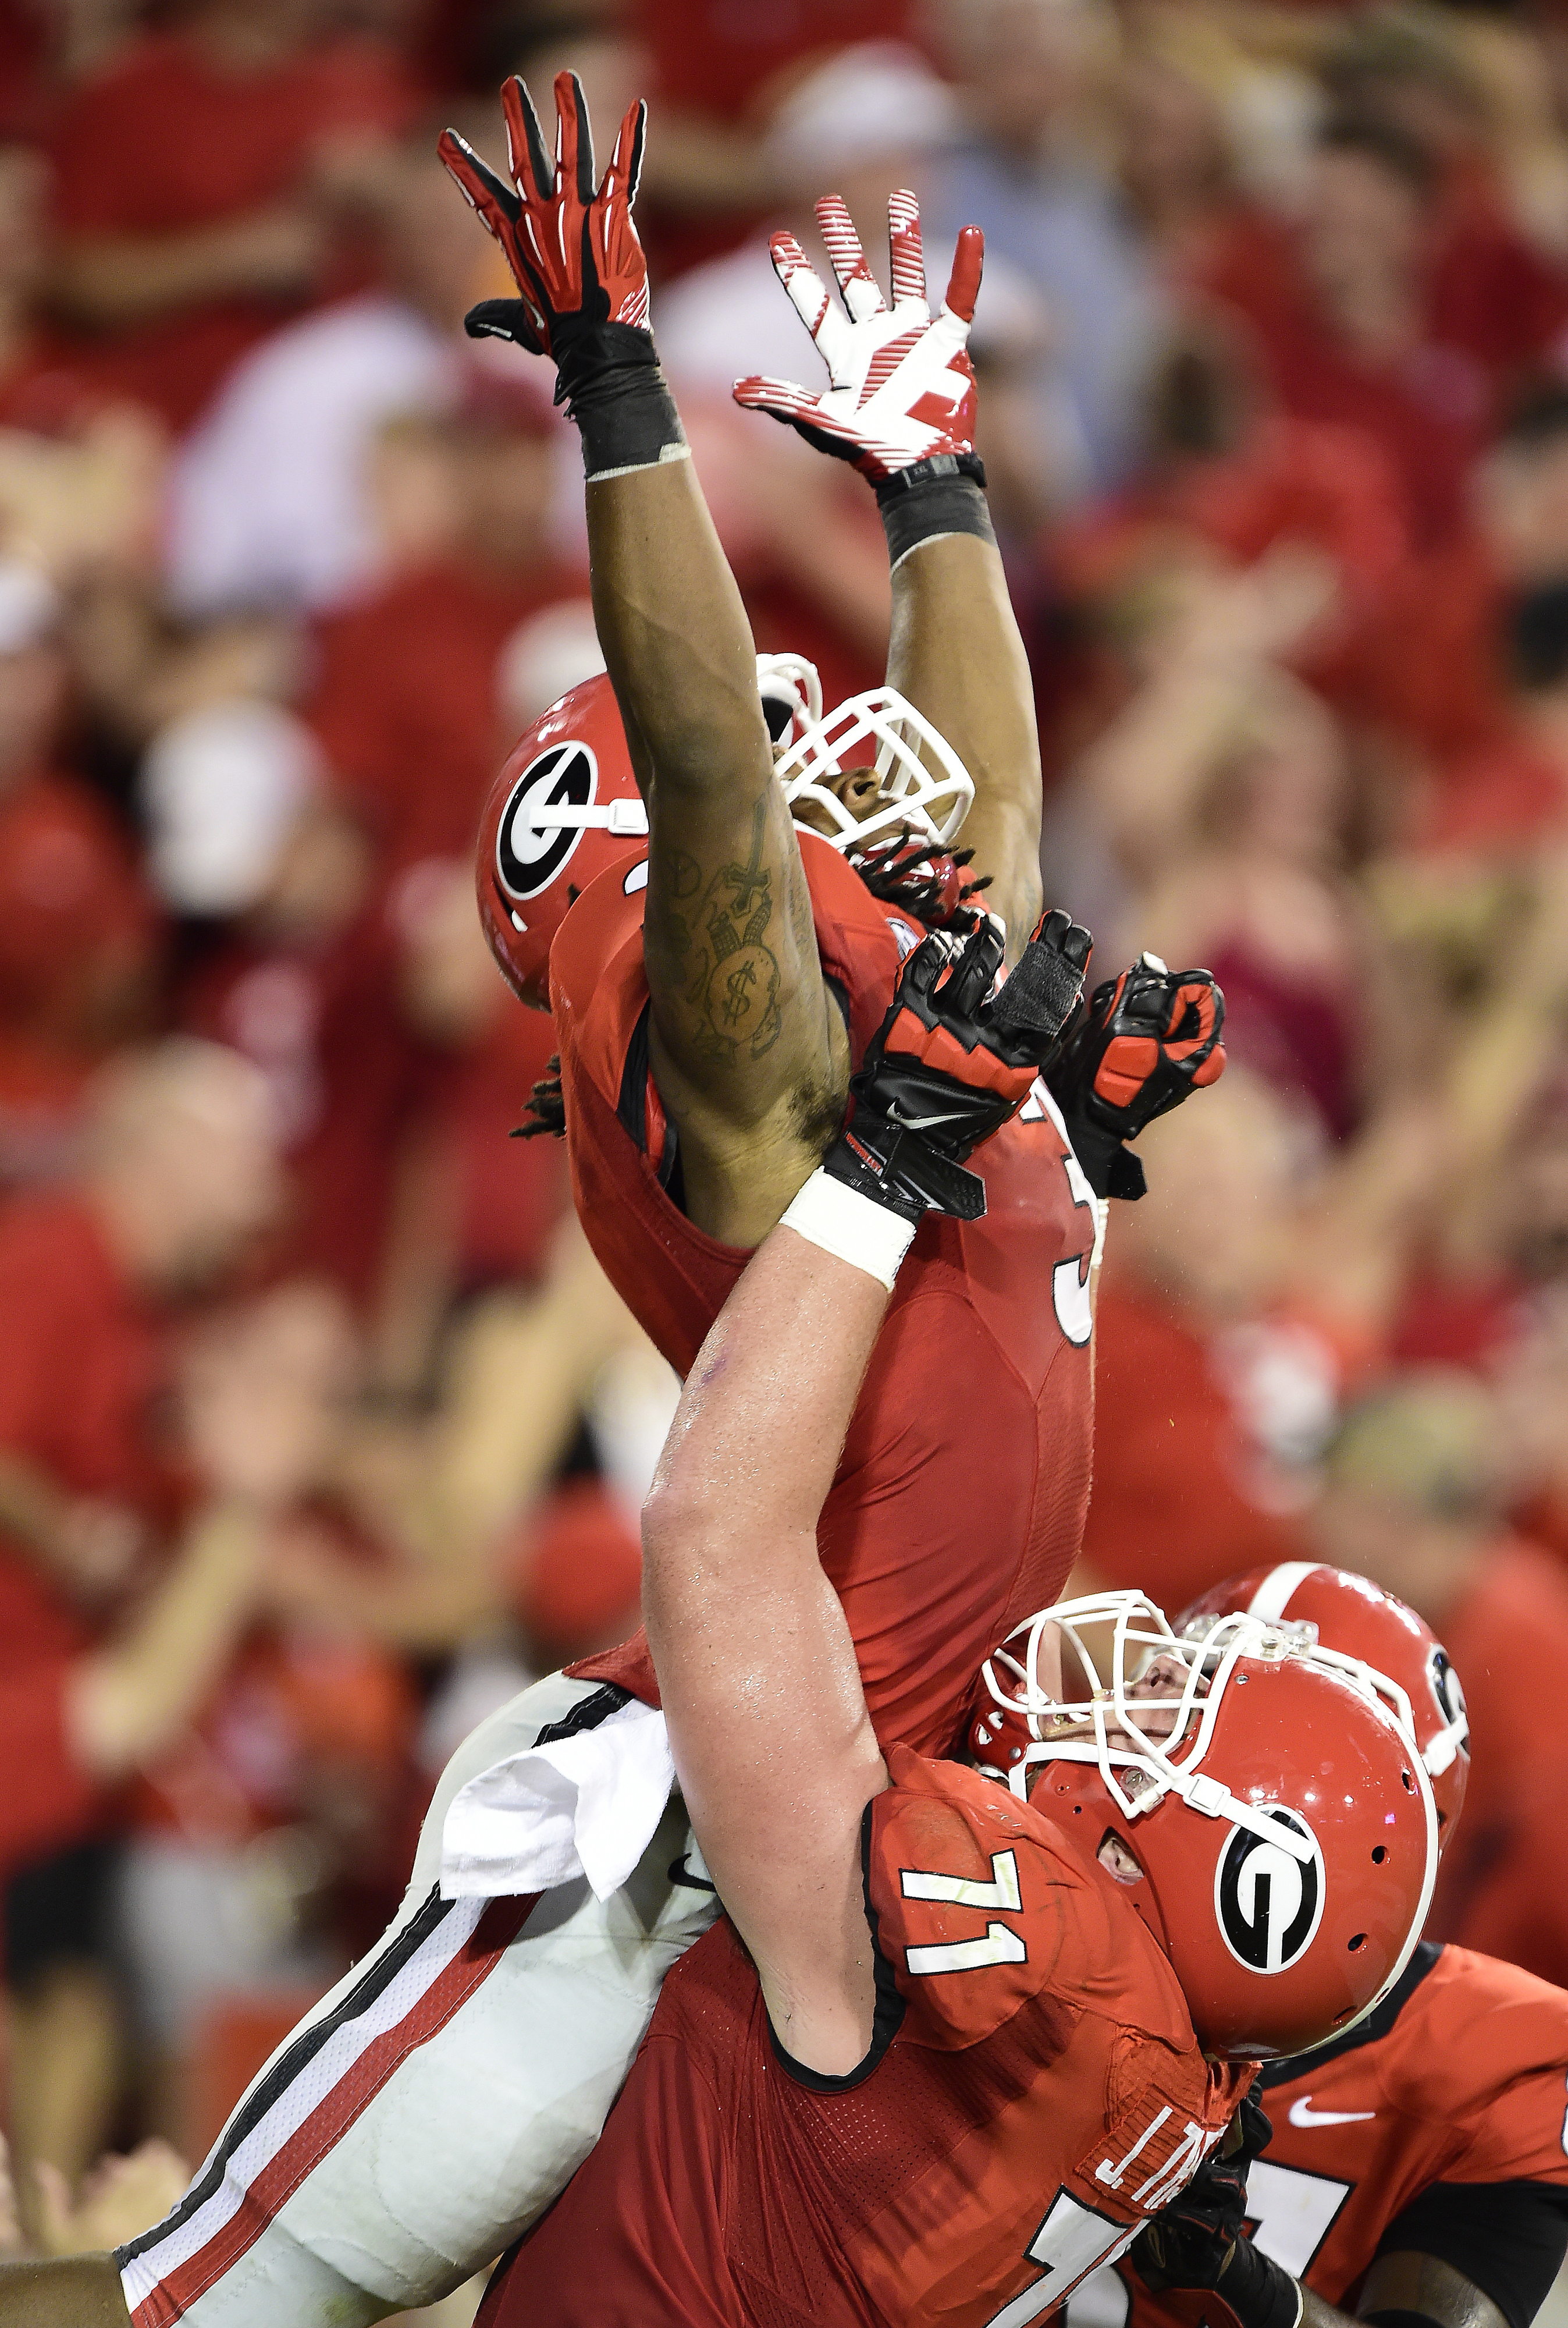 And all the Bulldog Nation Said:  Let My Gurley GO!!!!!!!!!!!